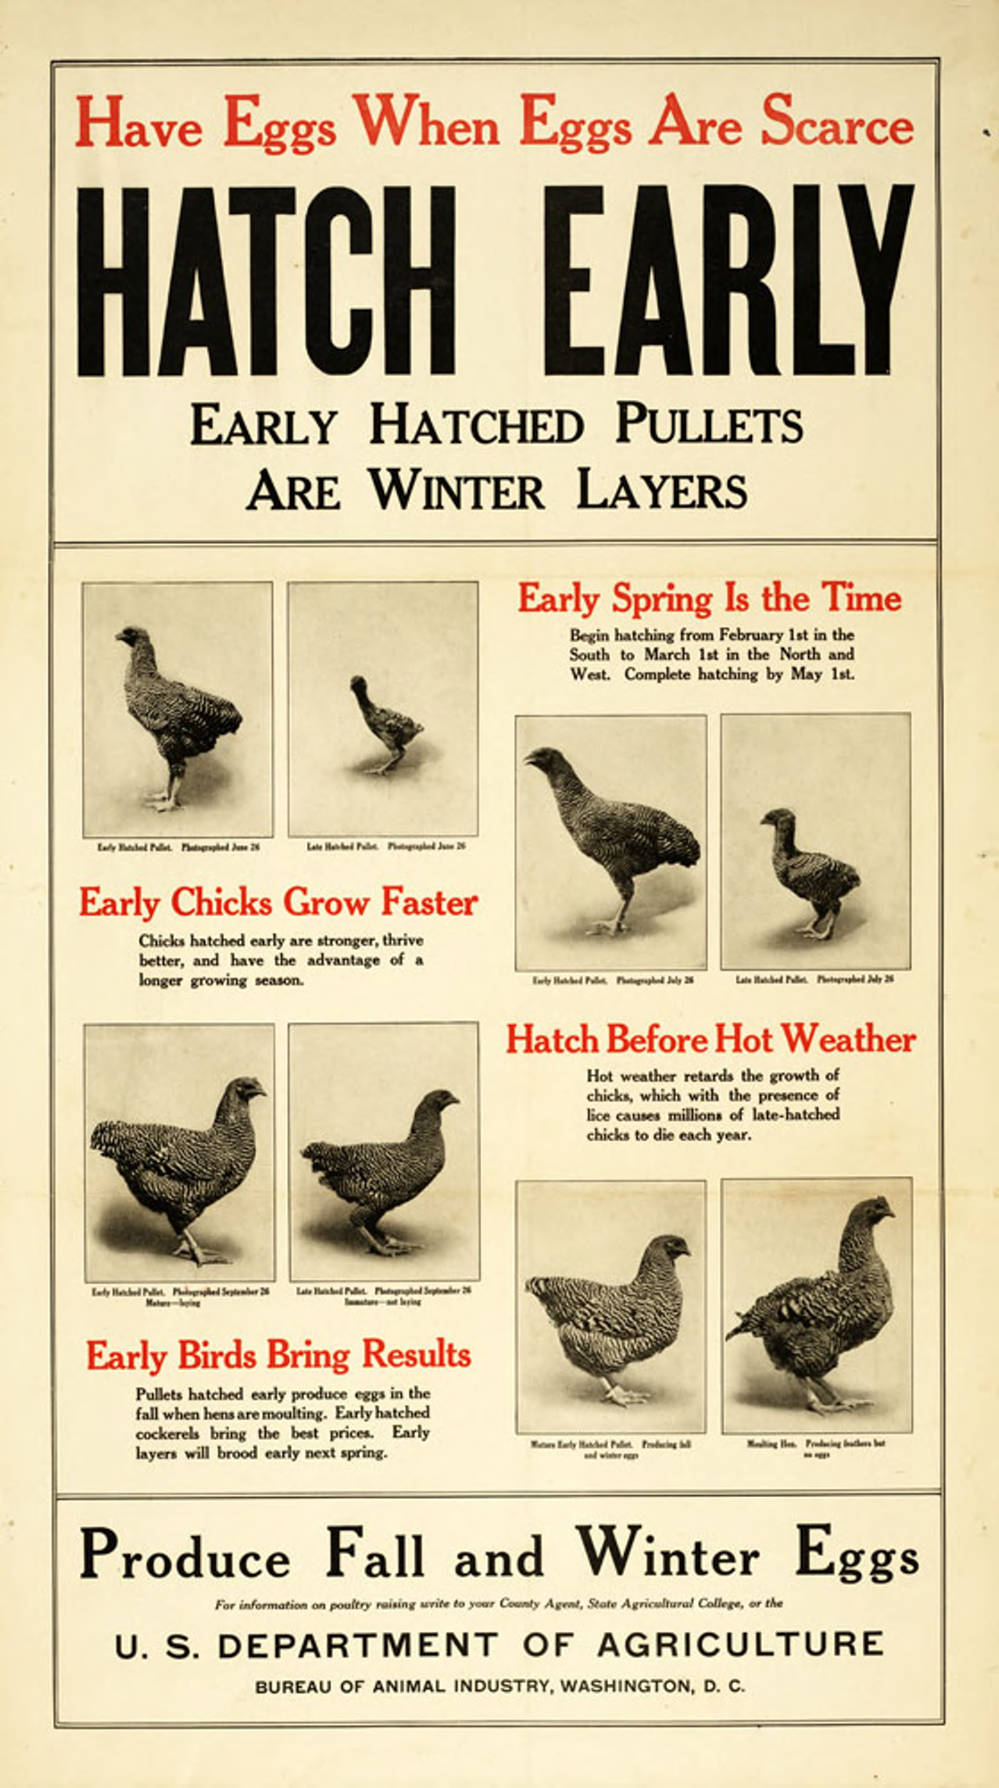 Hatch Early, Early Hatched Pullets Are Winter Layers, Department of Agriculture